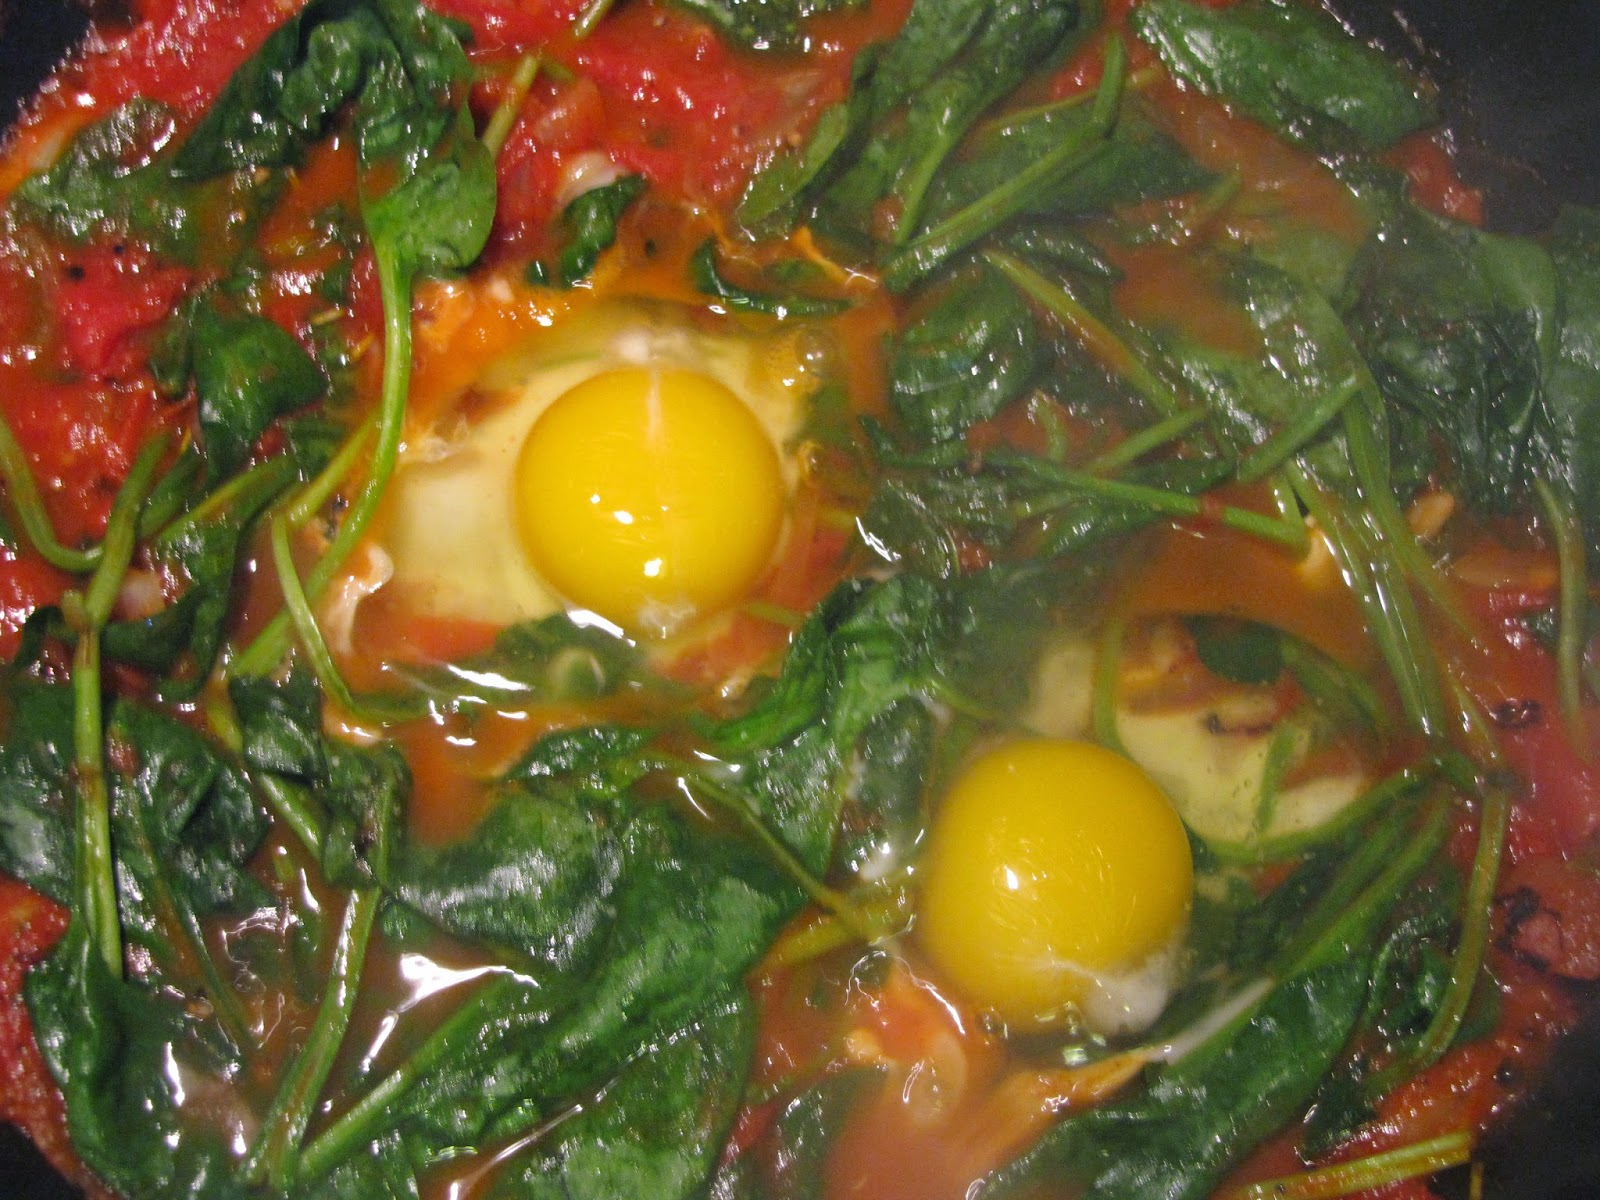 Eggs encased in surrounded by partly wilted spinach in tomato sauce